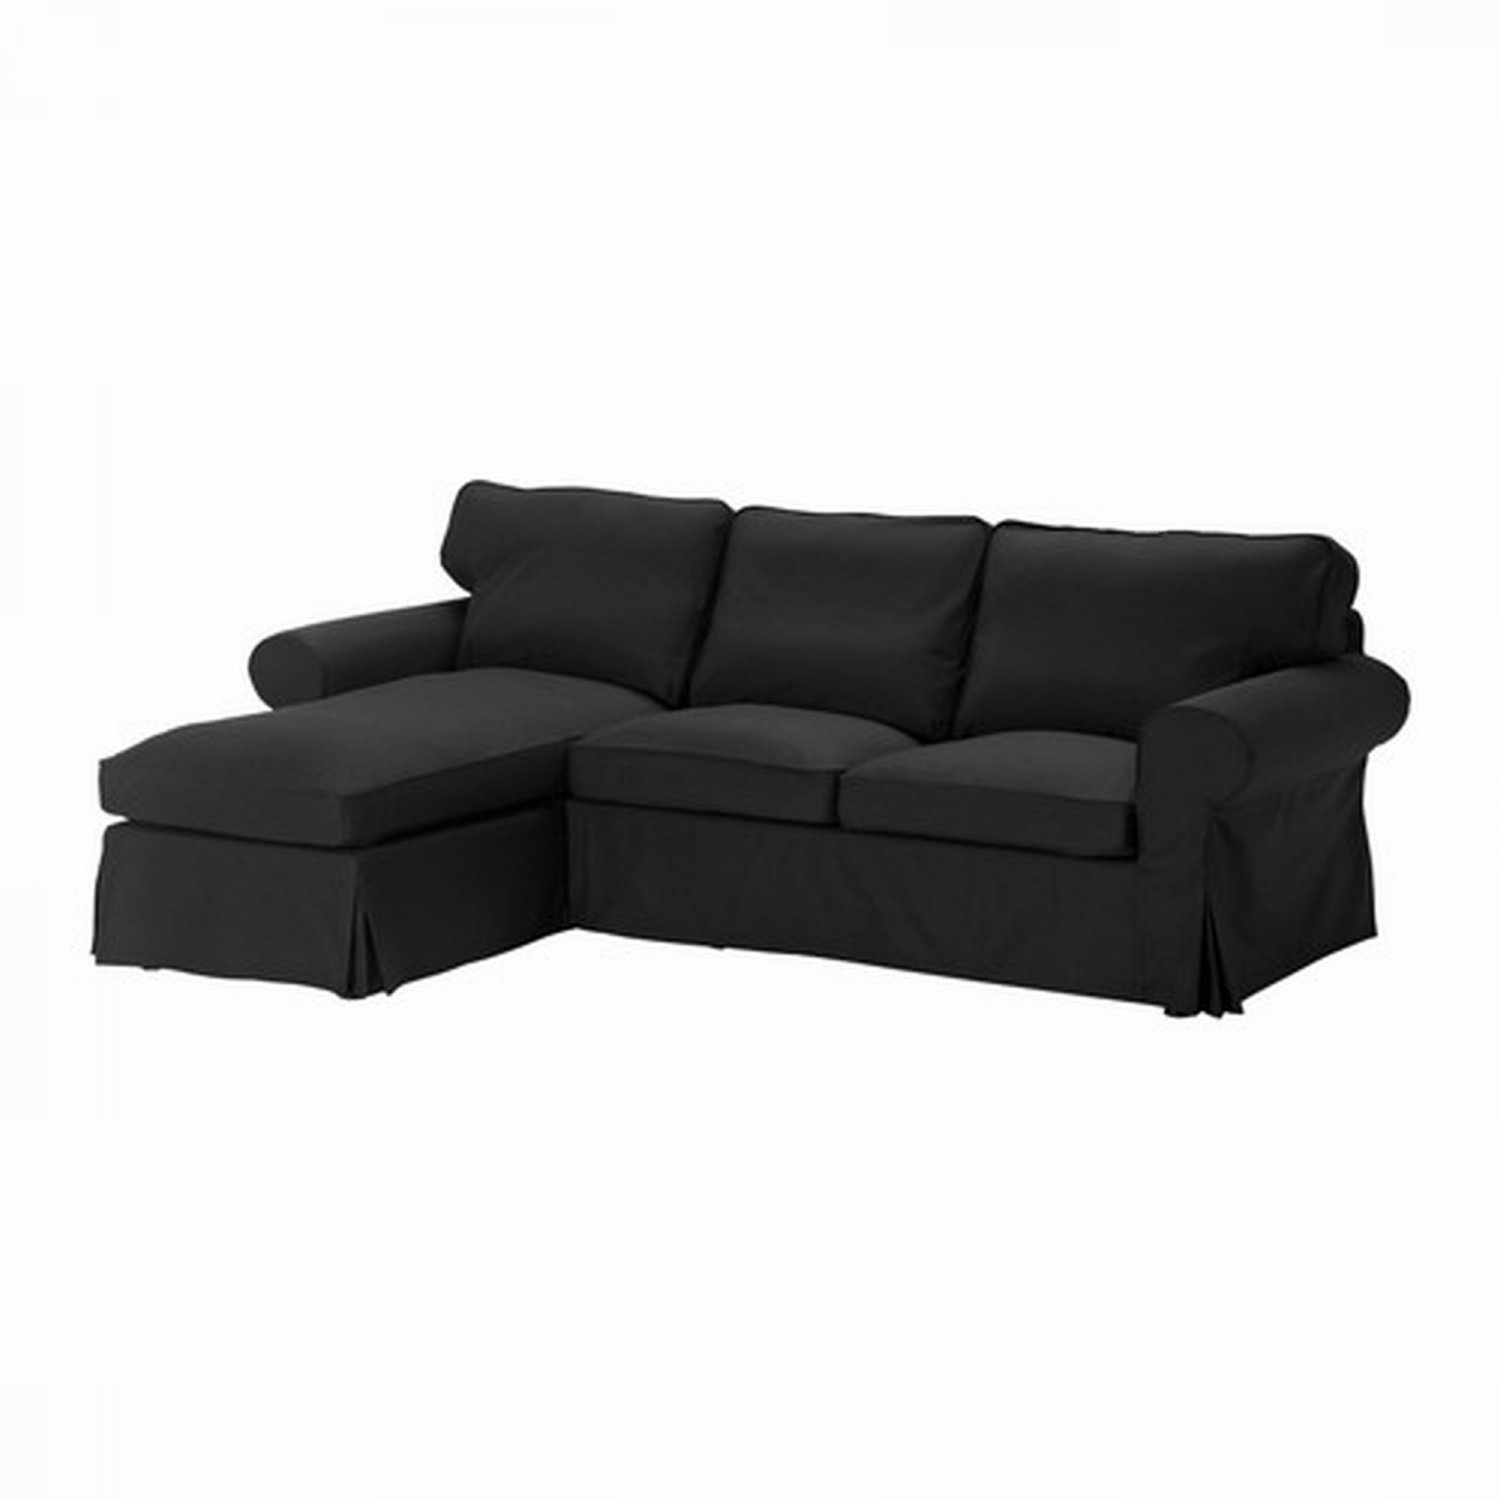 Ikea ektorp 2 seat loveseat sofa with chaise cover for Black chaise lounge sofa